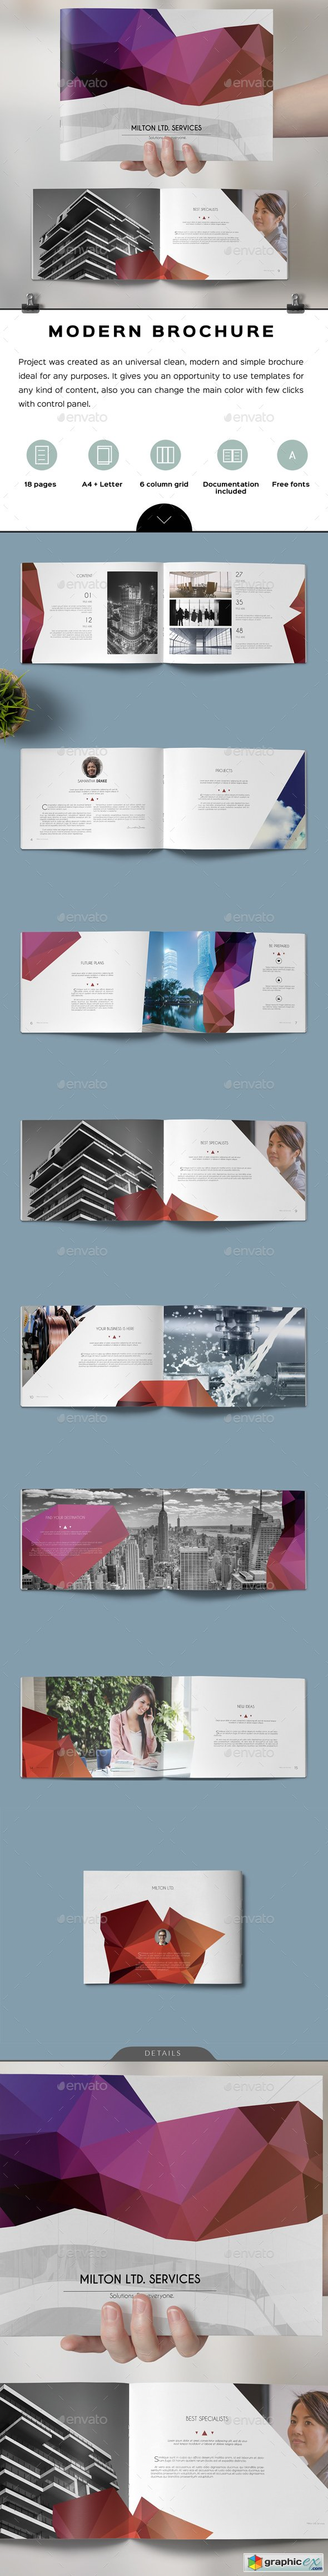 Multipurpose Business Brochure 04